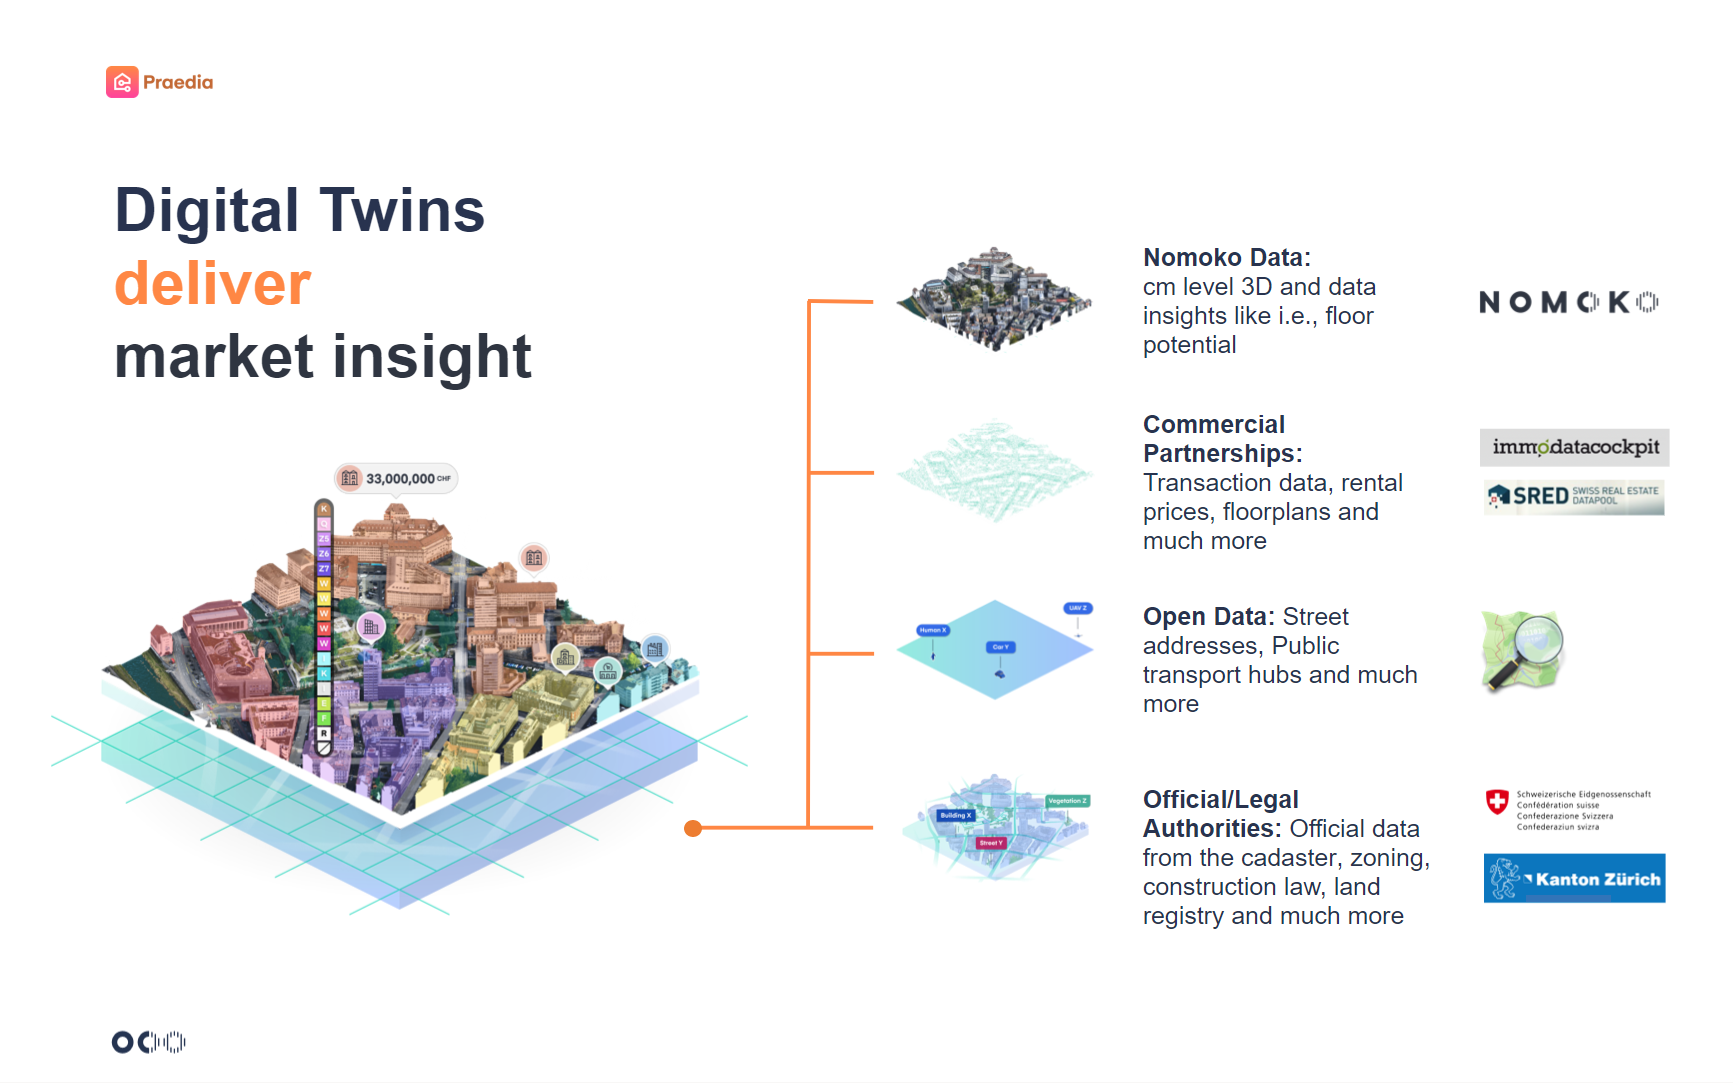 Digital Twins deliver market insights article visual Nomoko